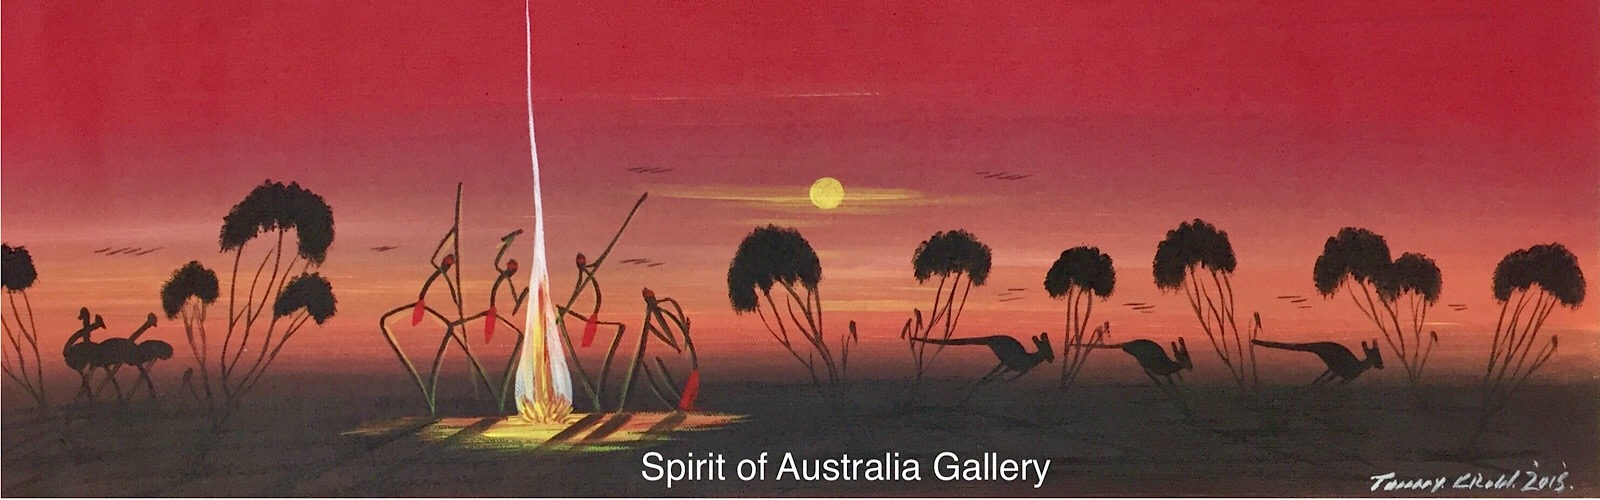 """Tommy Crow, """"Sunset Camp Fire Dreaming"""", 70x25cm"""